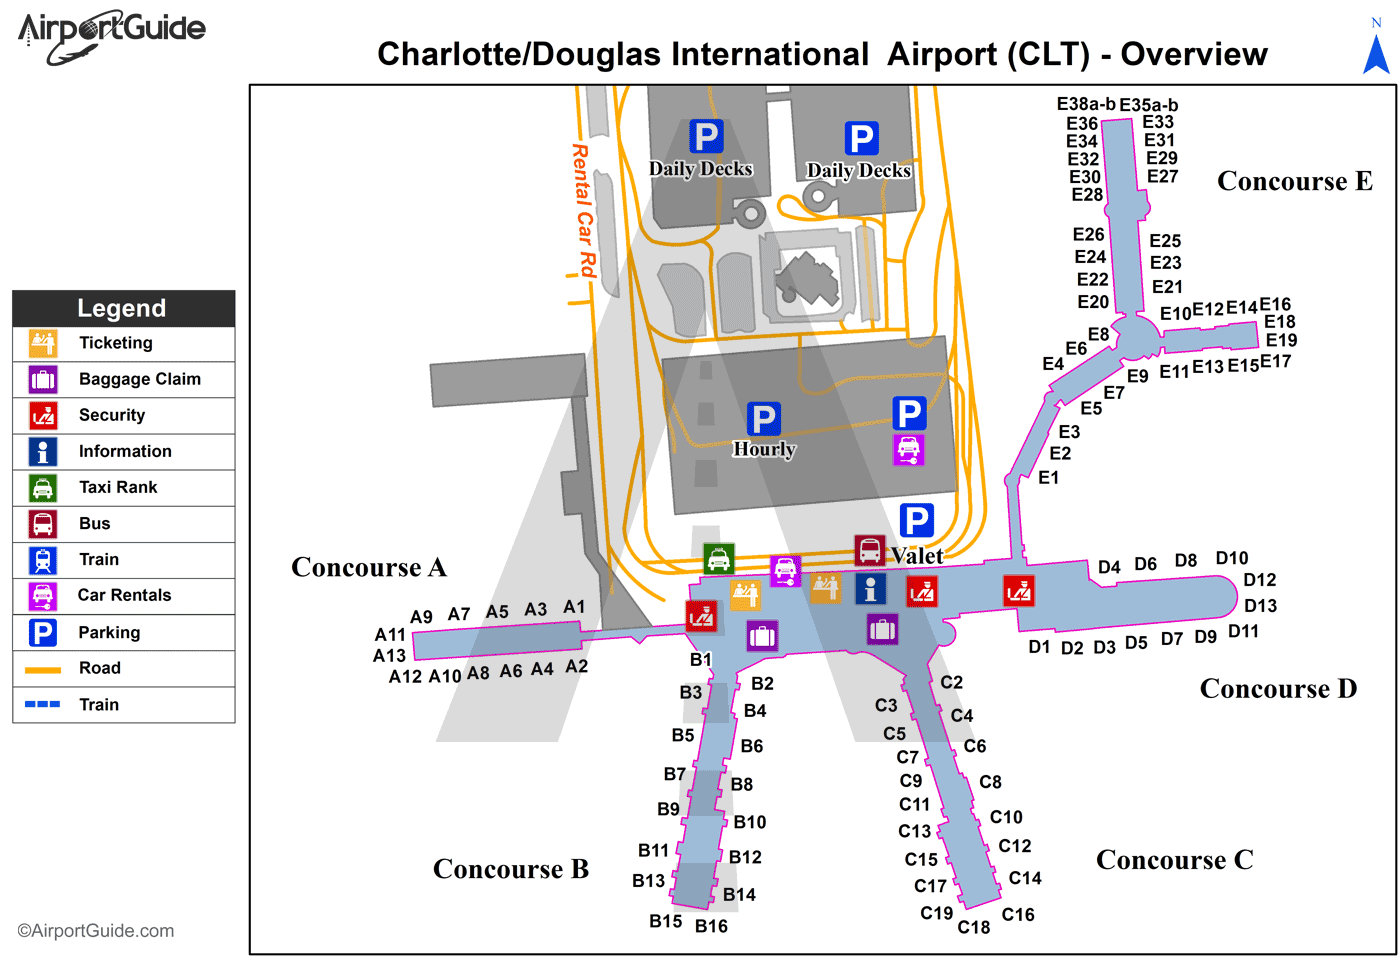 Charlotte - Charlotte/Douglas International (CLT) Airport Terminal Map - Overview